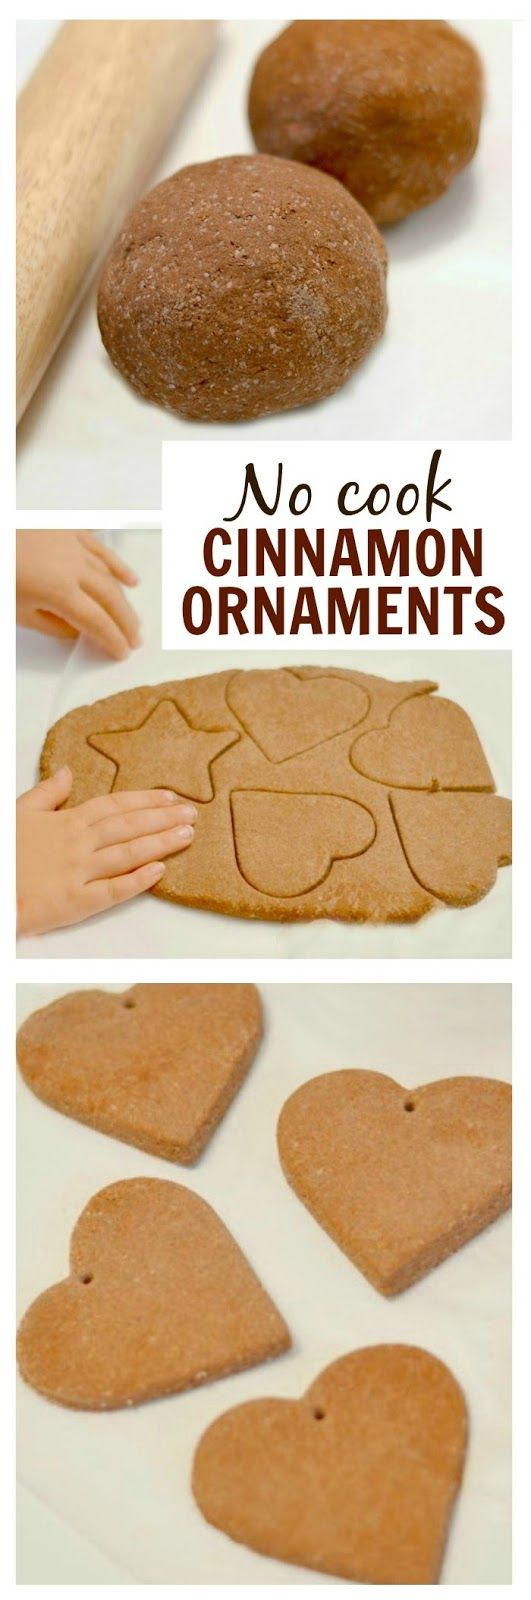 No-Cook Cinnamon Salt Dough Ornaments ~ Requires no glue in the mixture * http://www.growingajeweledrose.com/2013/11/no-cook-cinnamon-ornaments.html